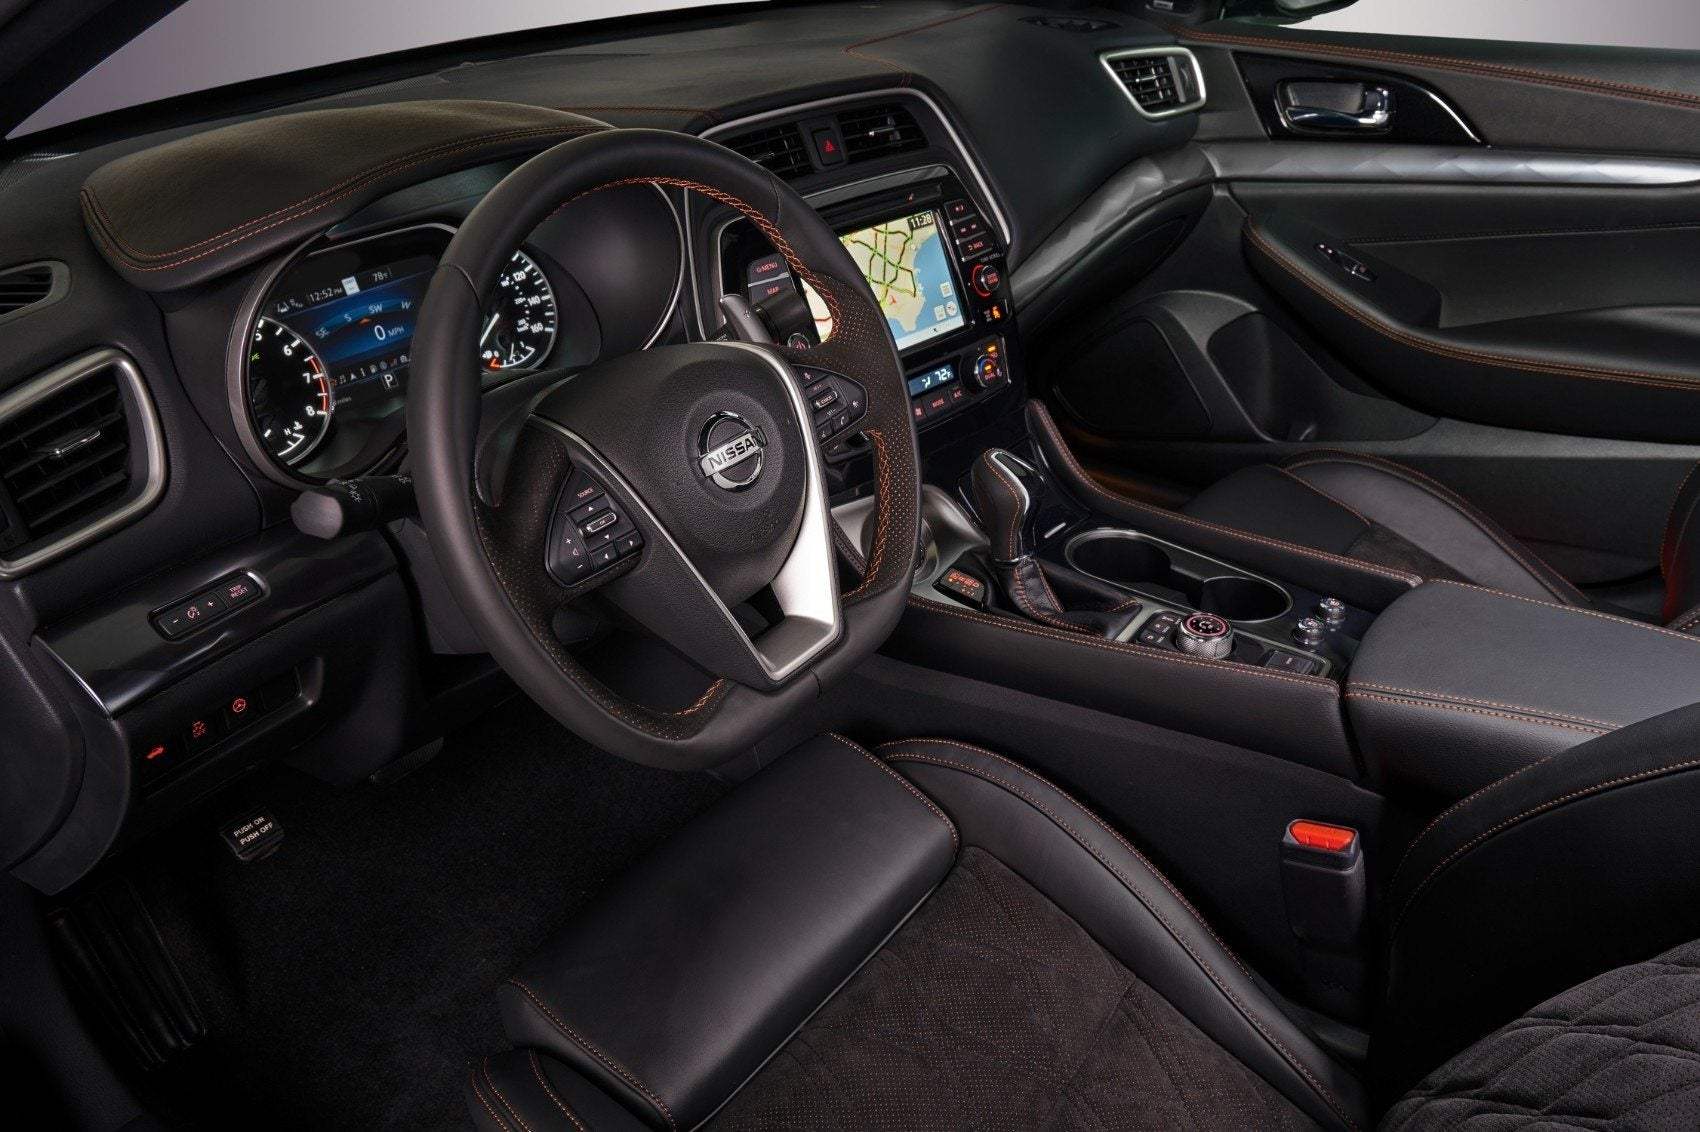 2019 Nissan Maxima Athletic Luxurious But Too Expensive